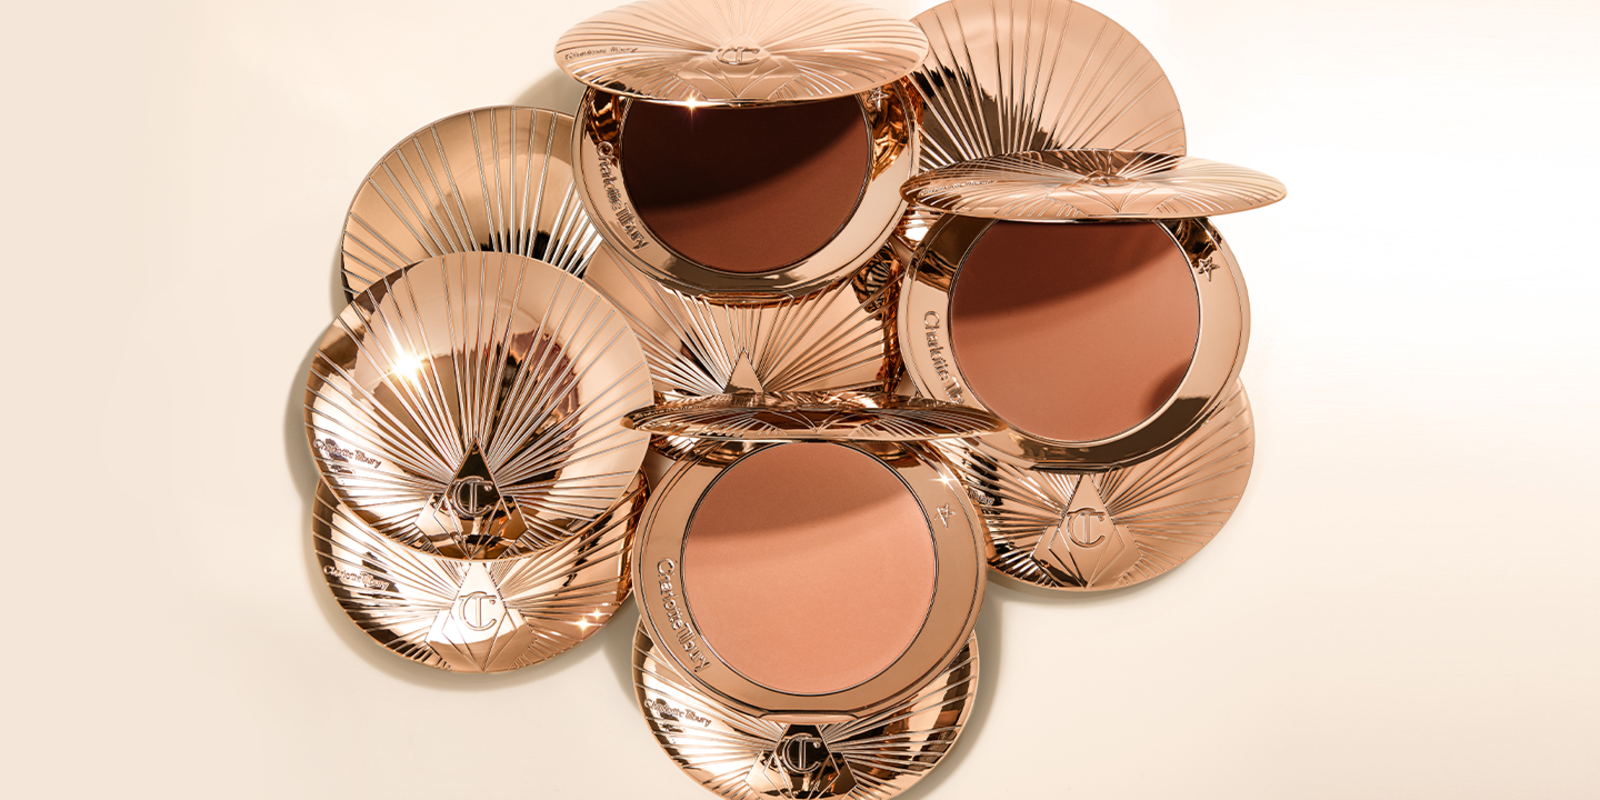 Airbrush Bronzer Open Pack Shot